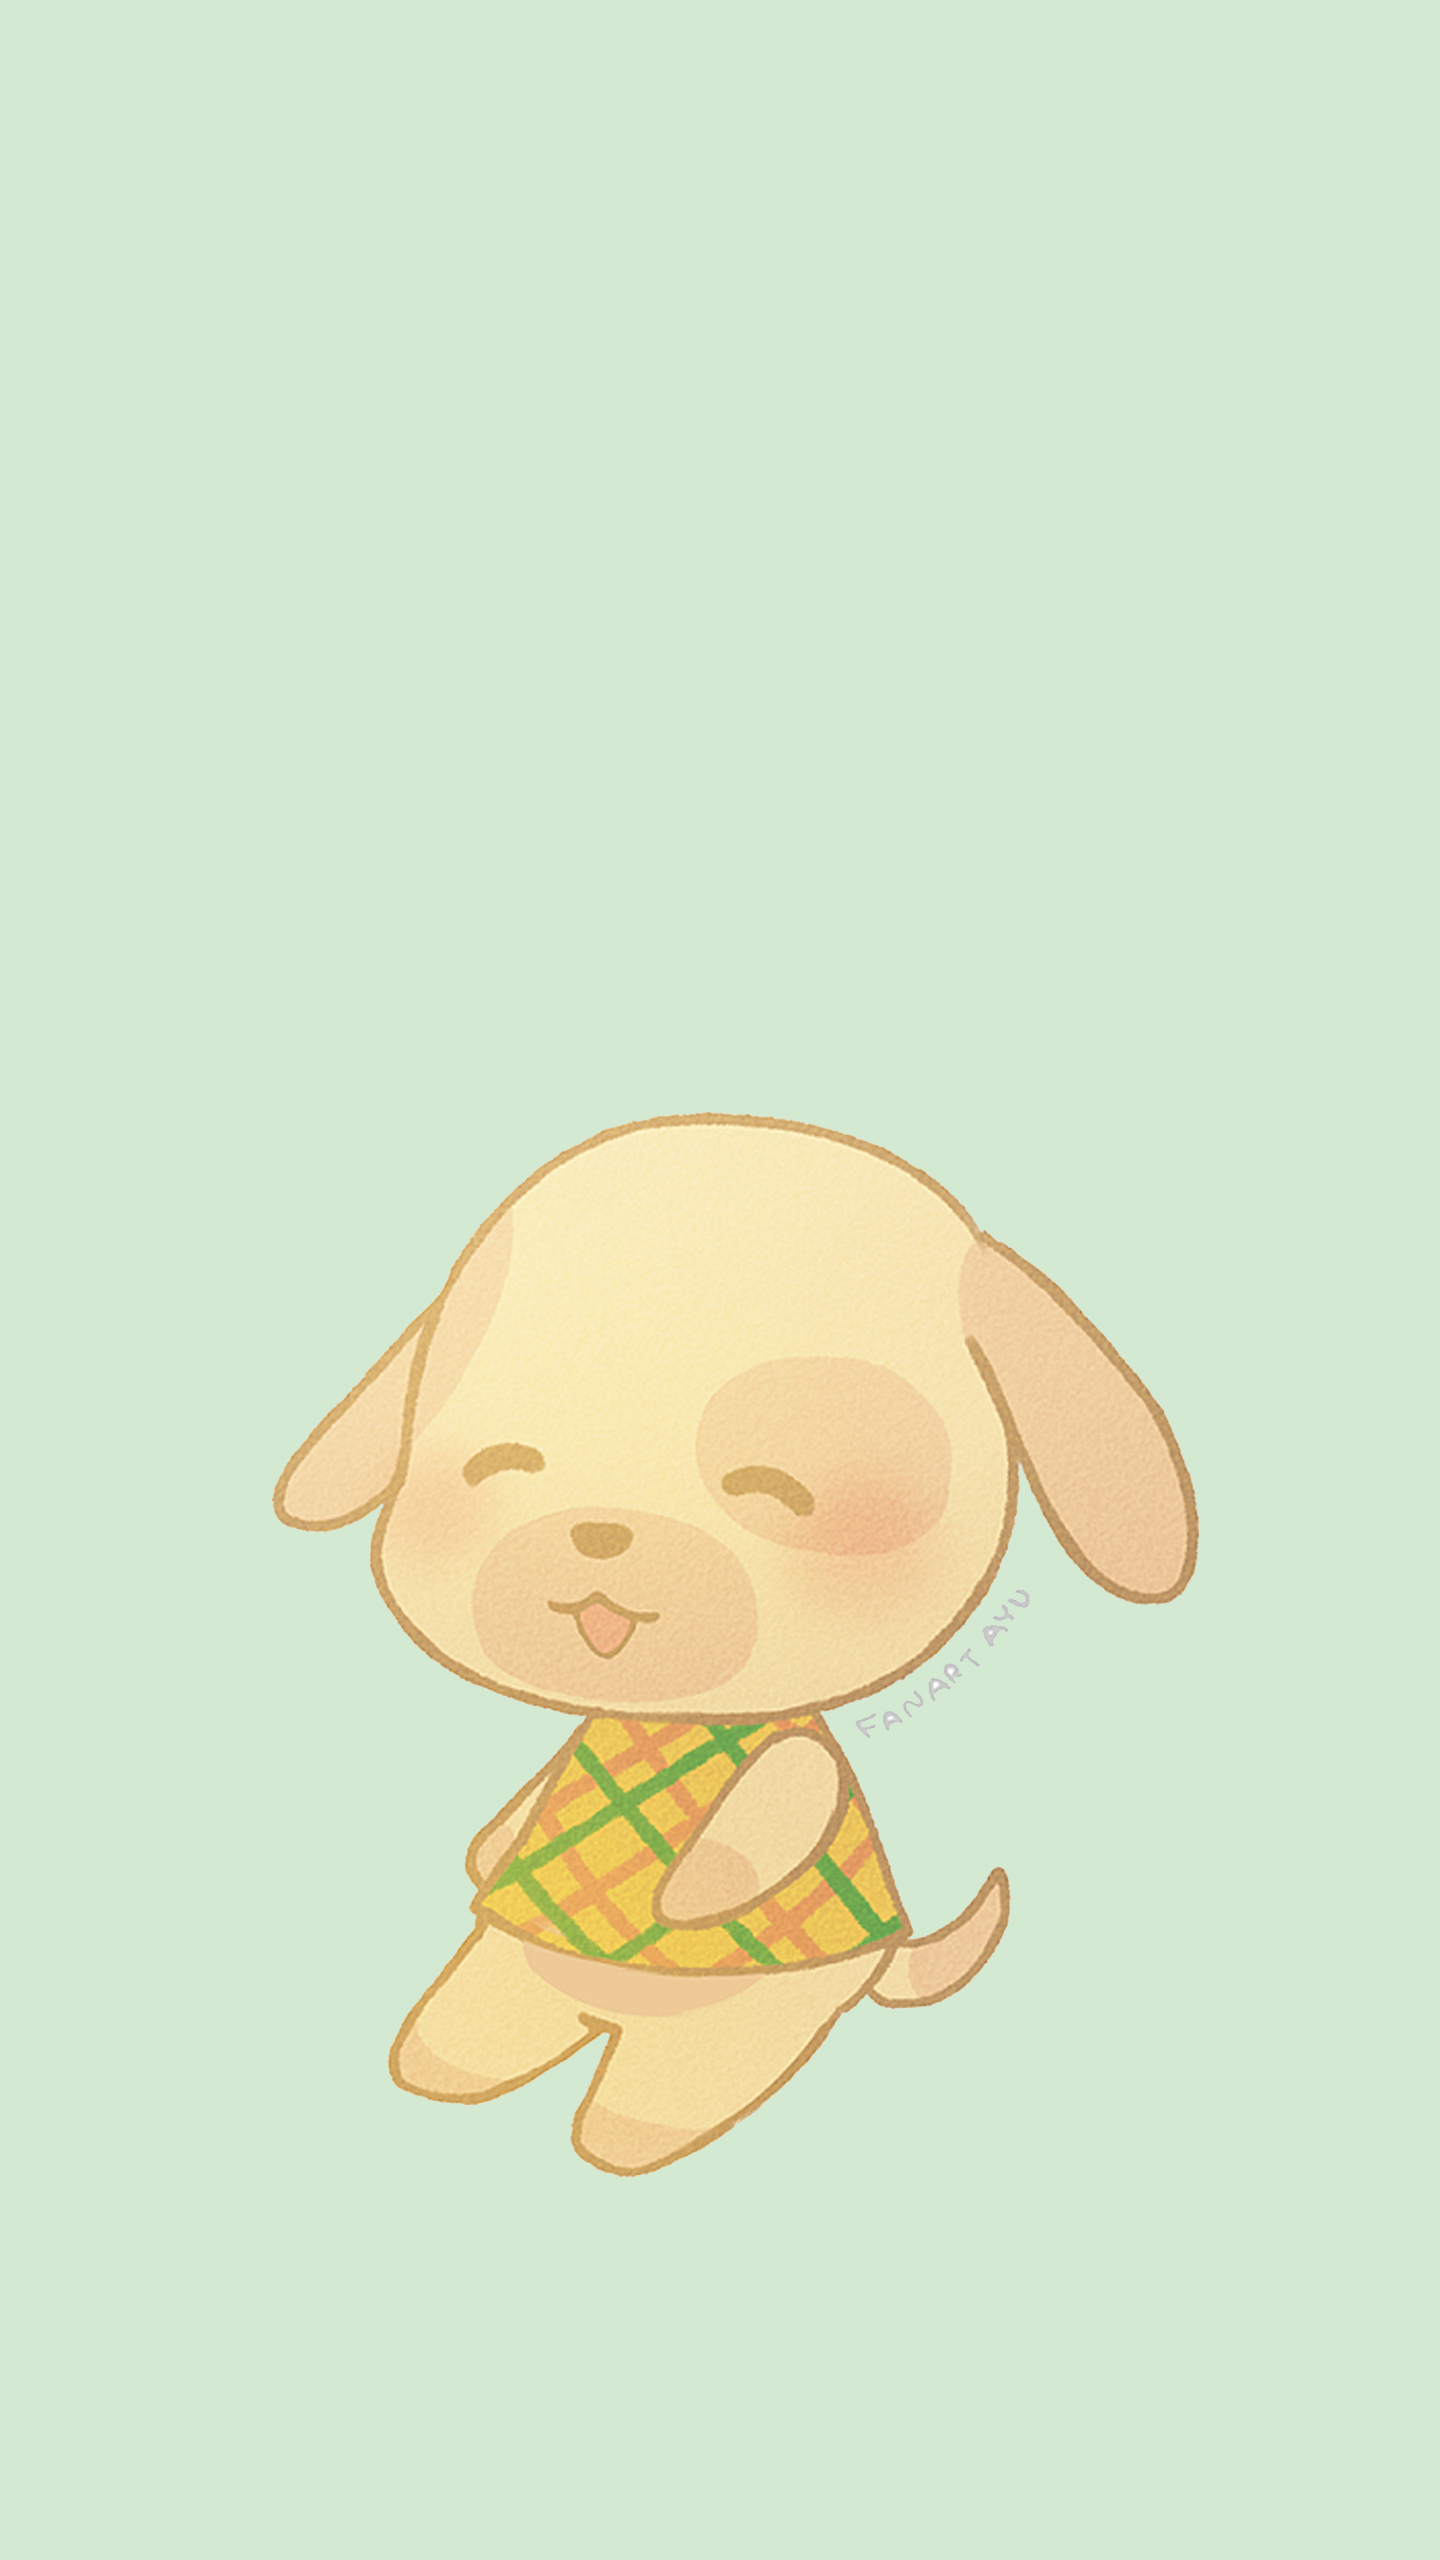 Goldie Animal Crossing Goldie Animal Crossing